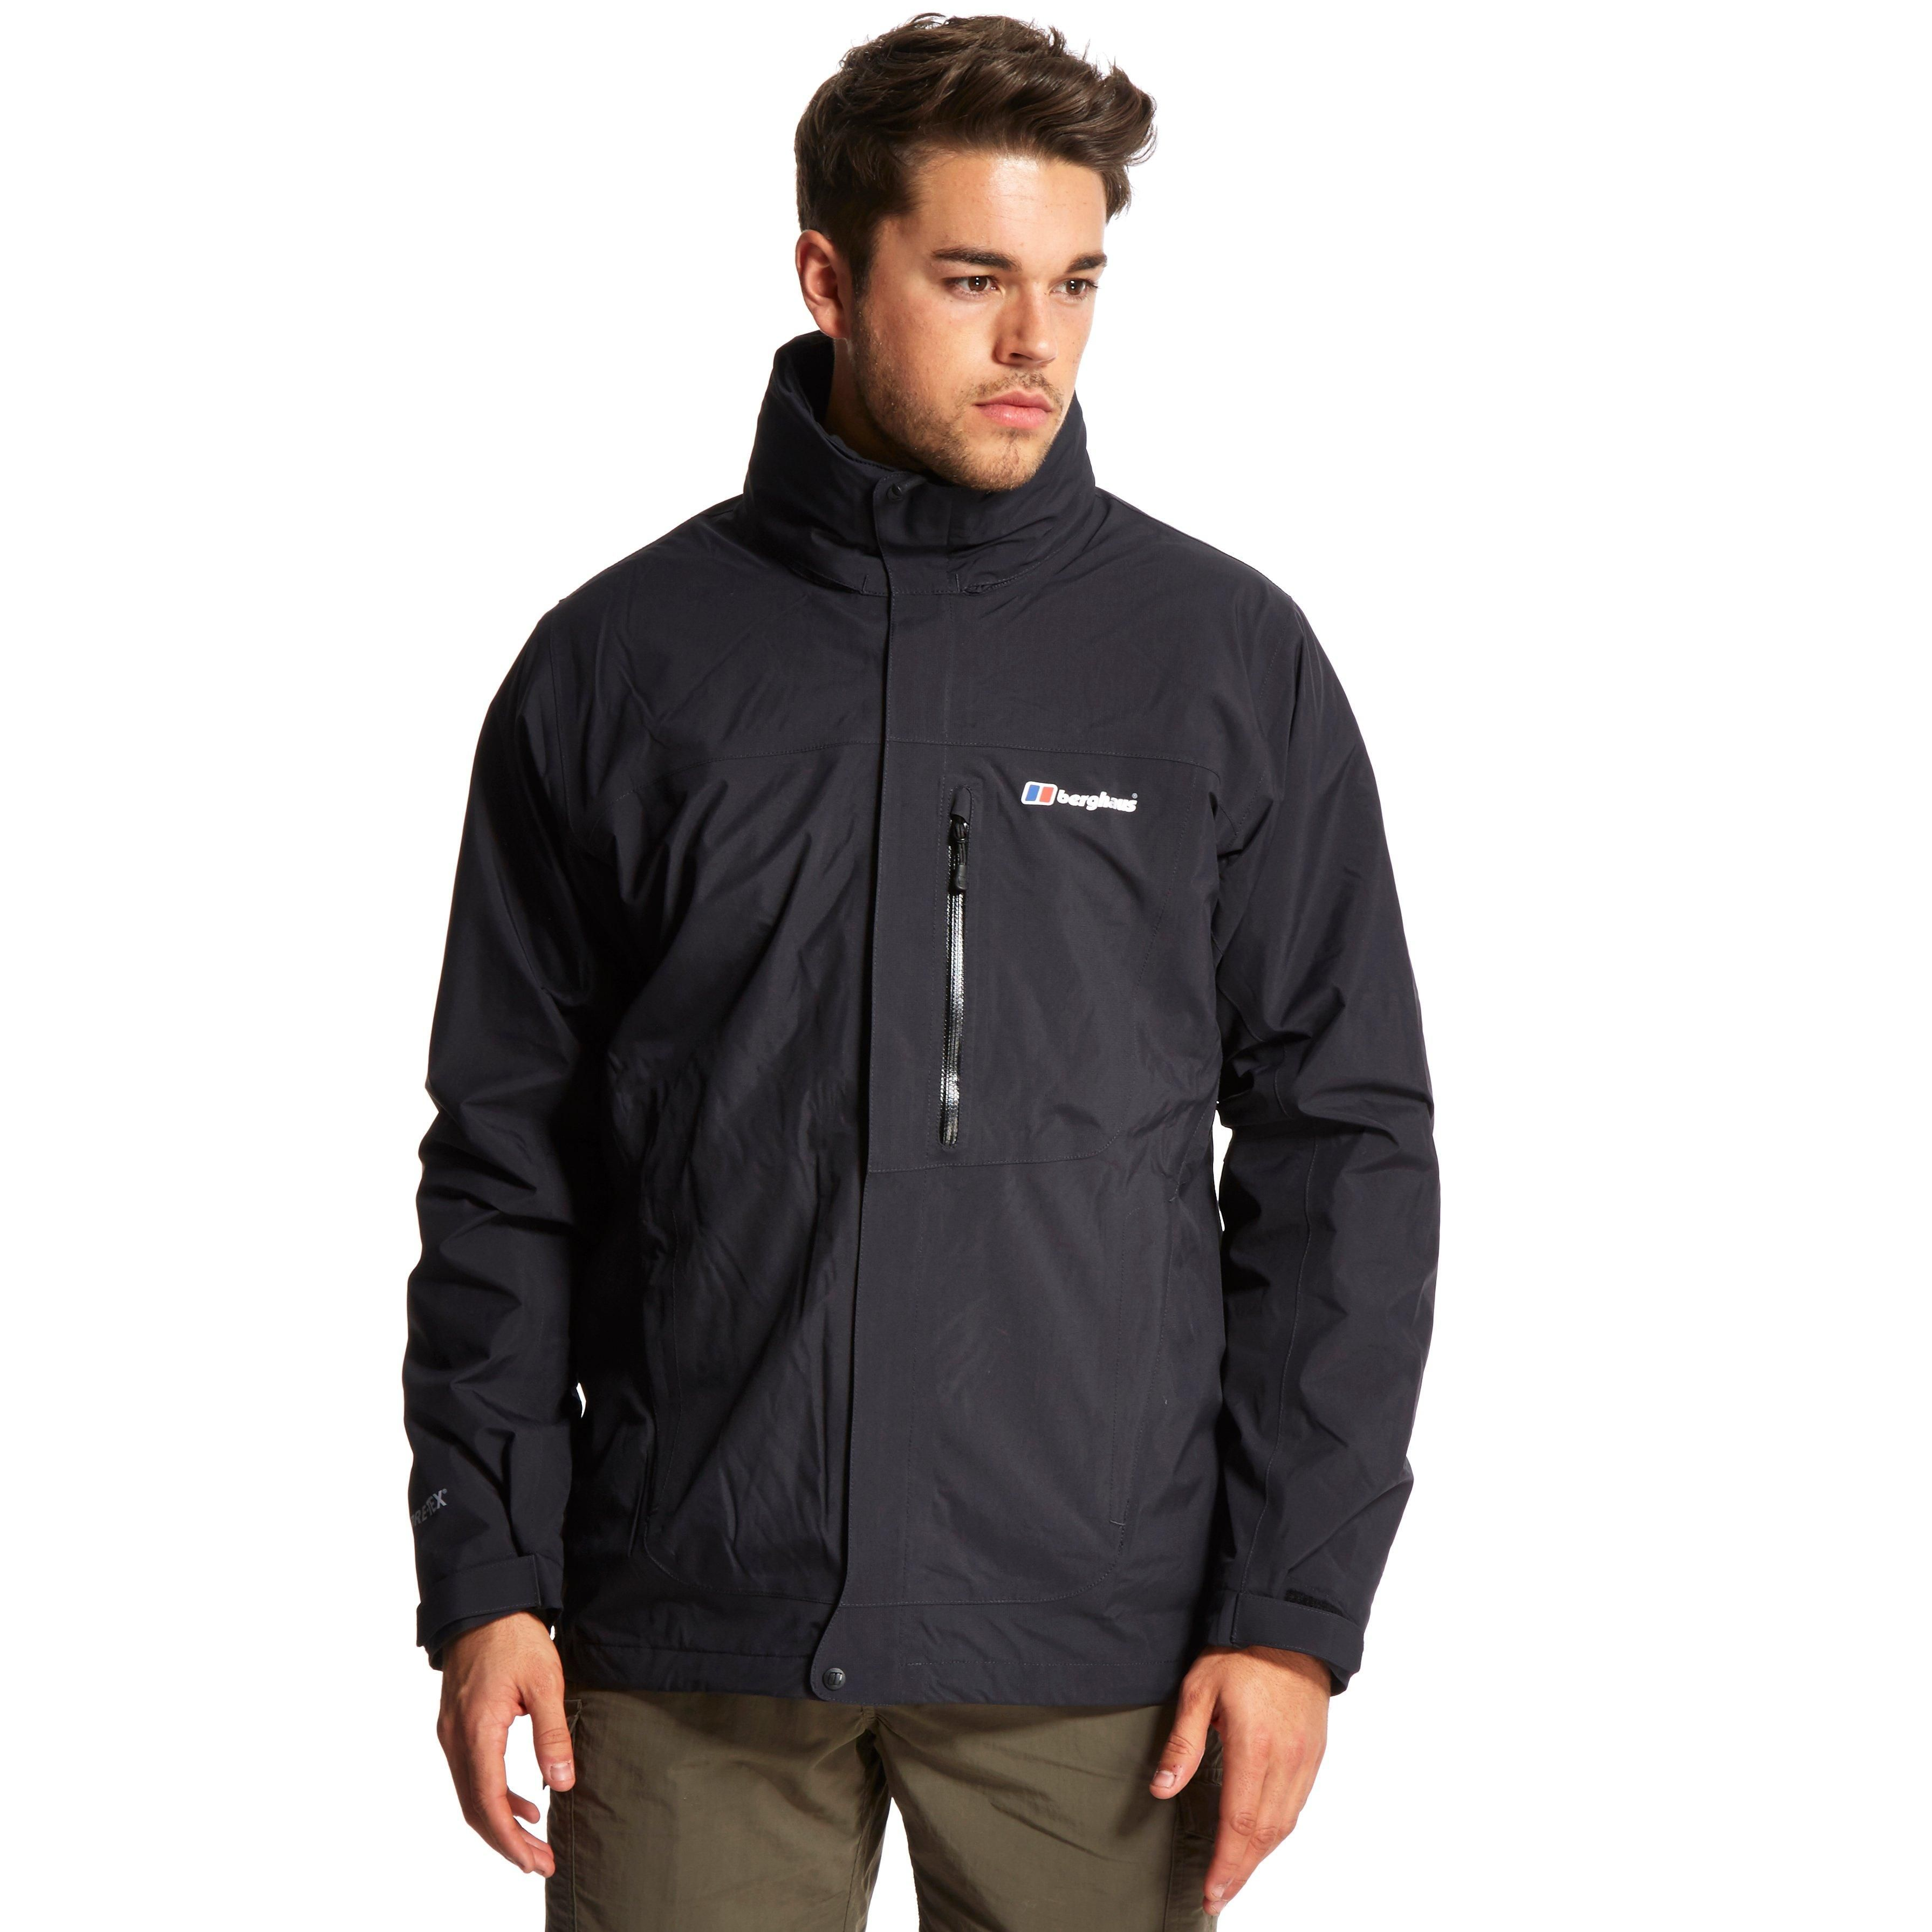 Save £120.00 off the Berghaus Arisdale 3-In-1 GORE-TEX Jacket ...